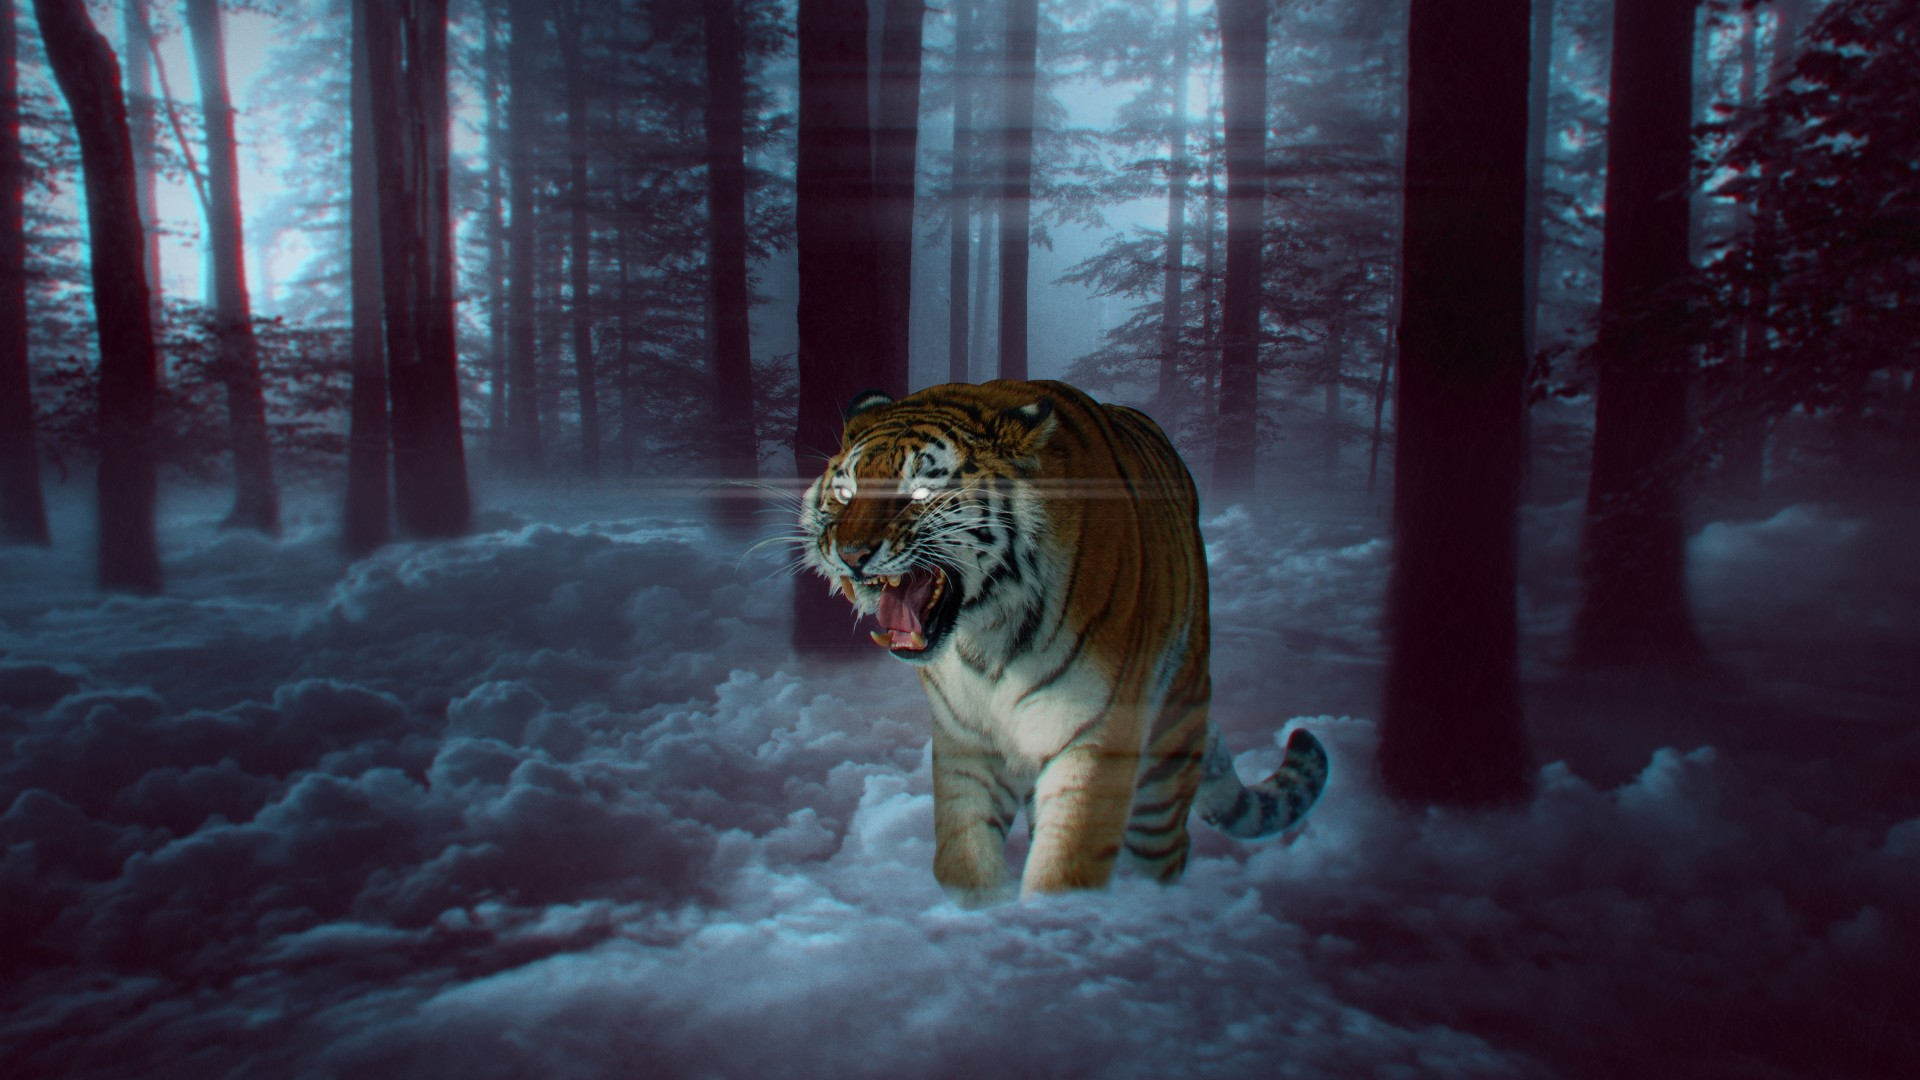 Anime Beach Wallpaper Mystic Tiger In Forest 4k 8k Wallpapers Hd Wallpapers